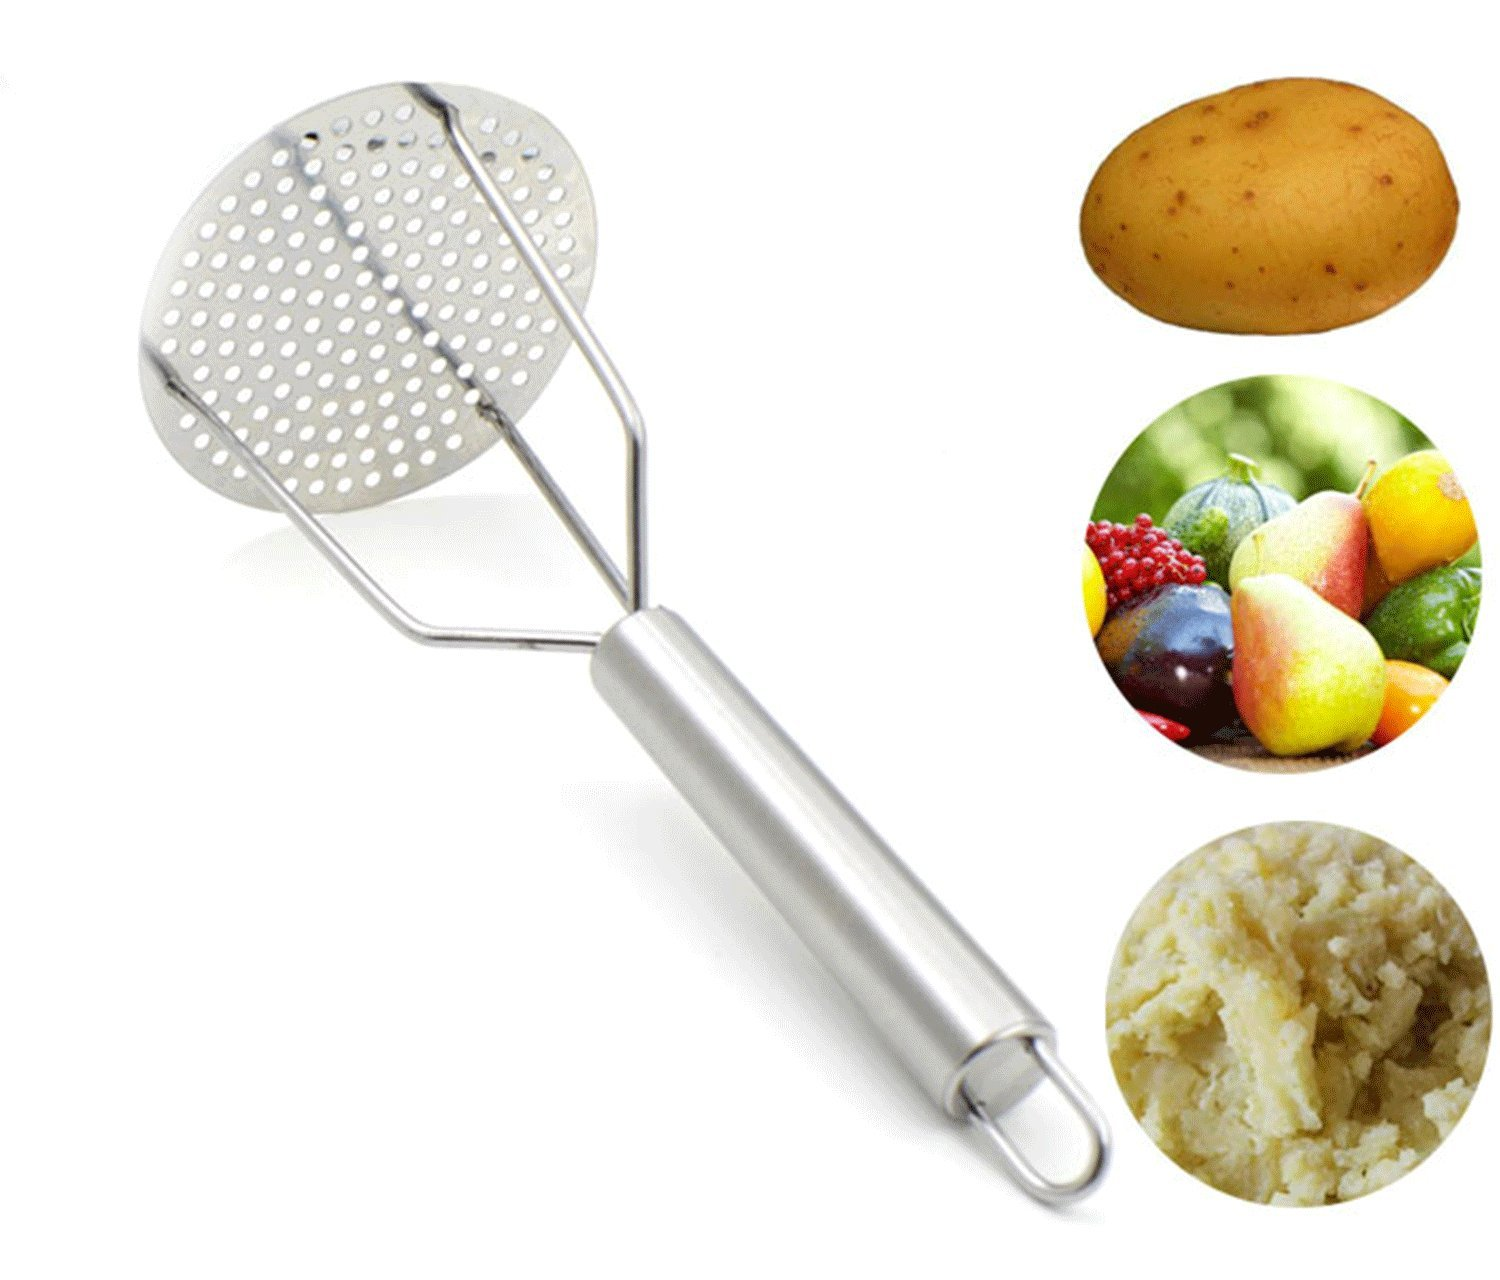 kakamono Stainless Steel Potato Masher, Potato Ricer for Smooth Mashed Potatoes, Vegetables and Fruits